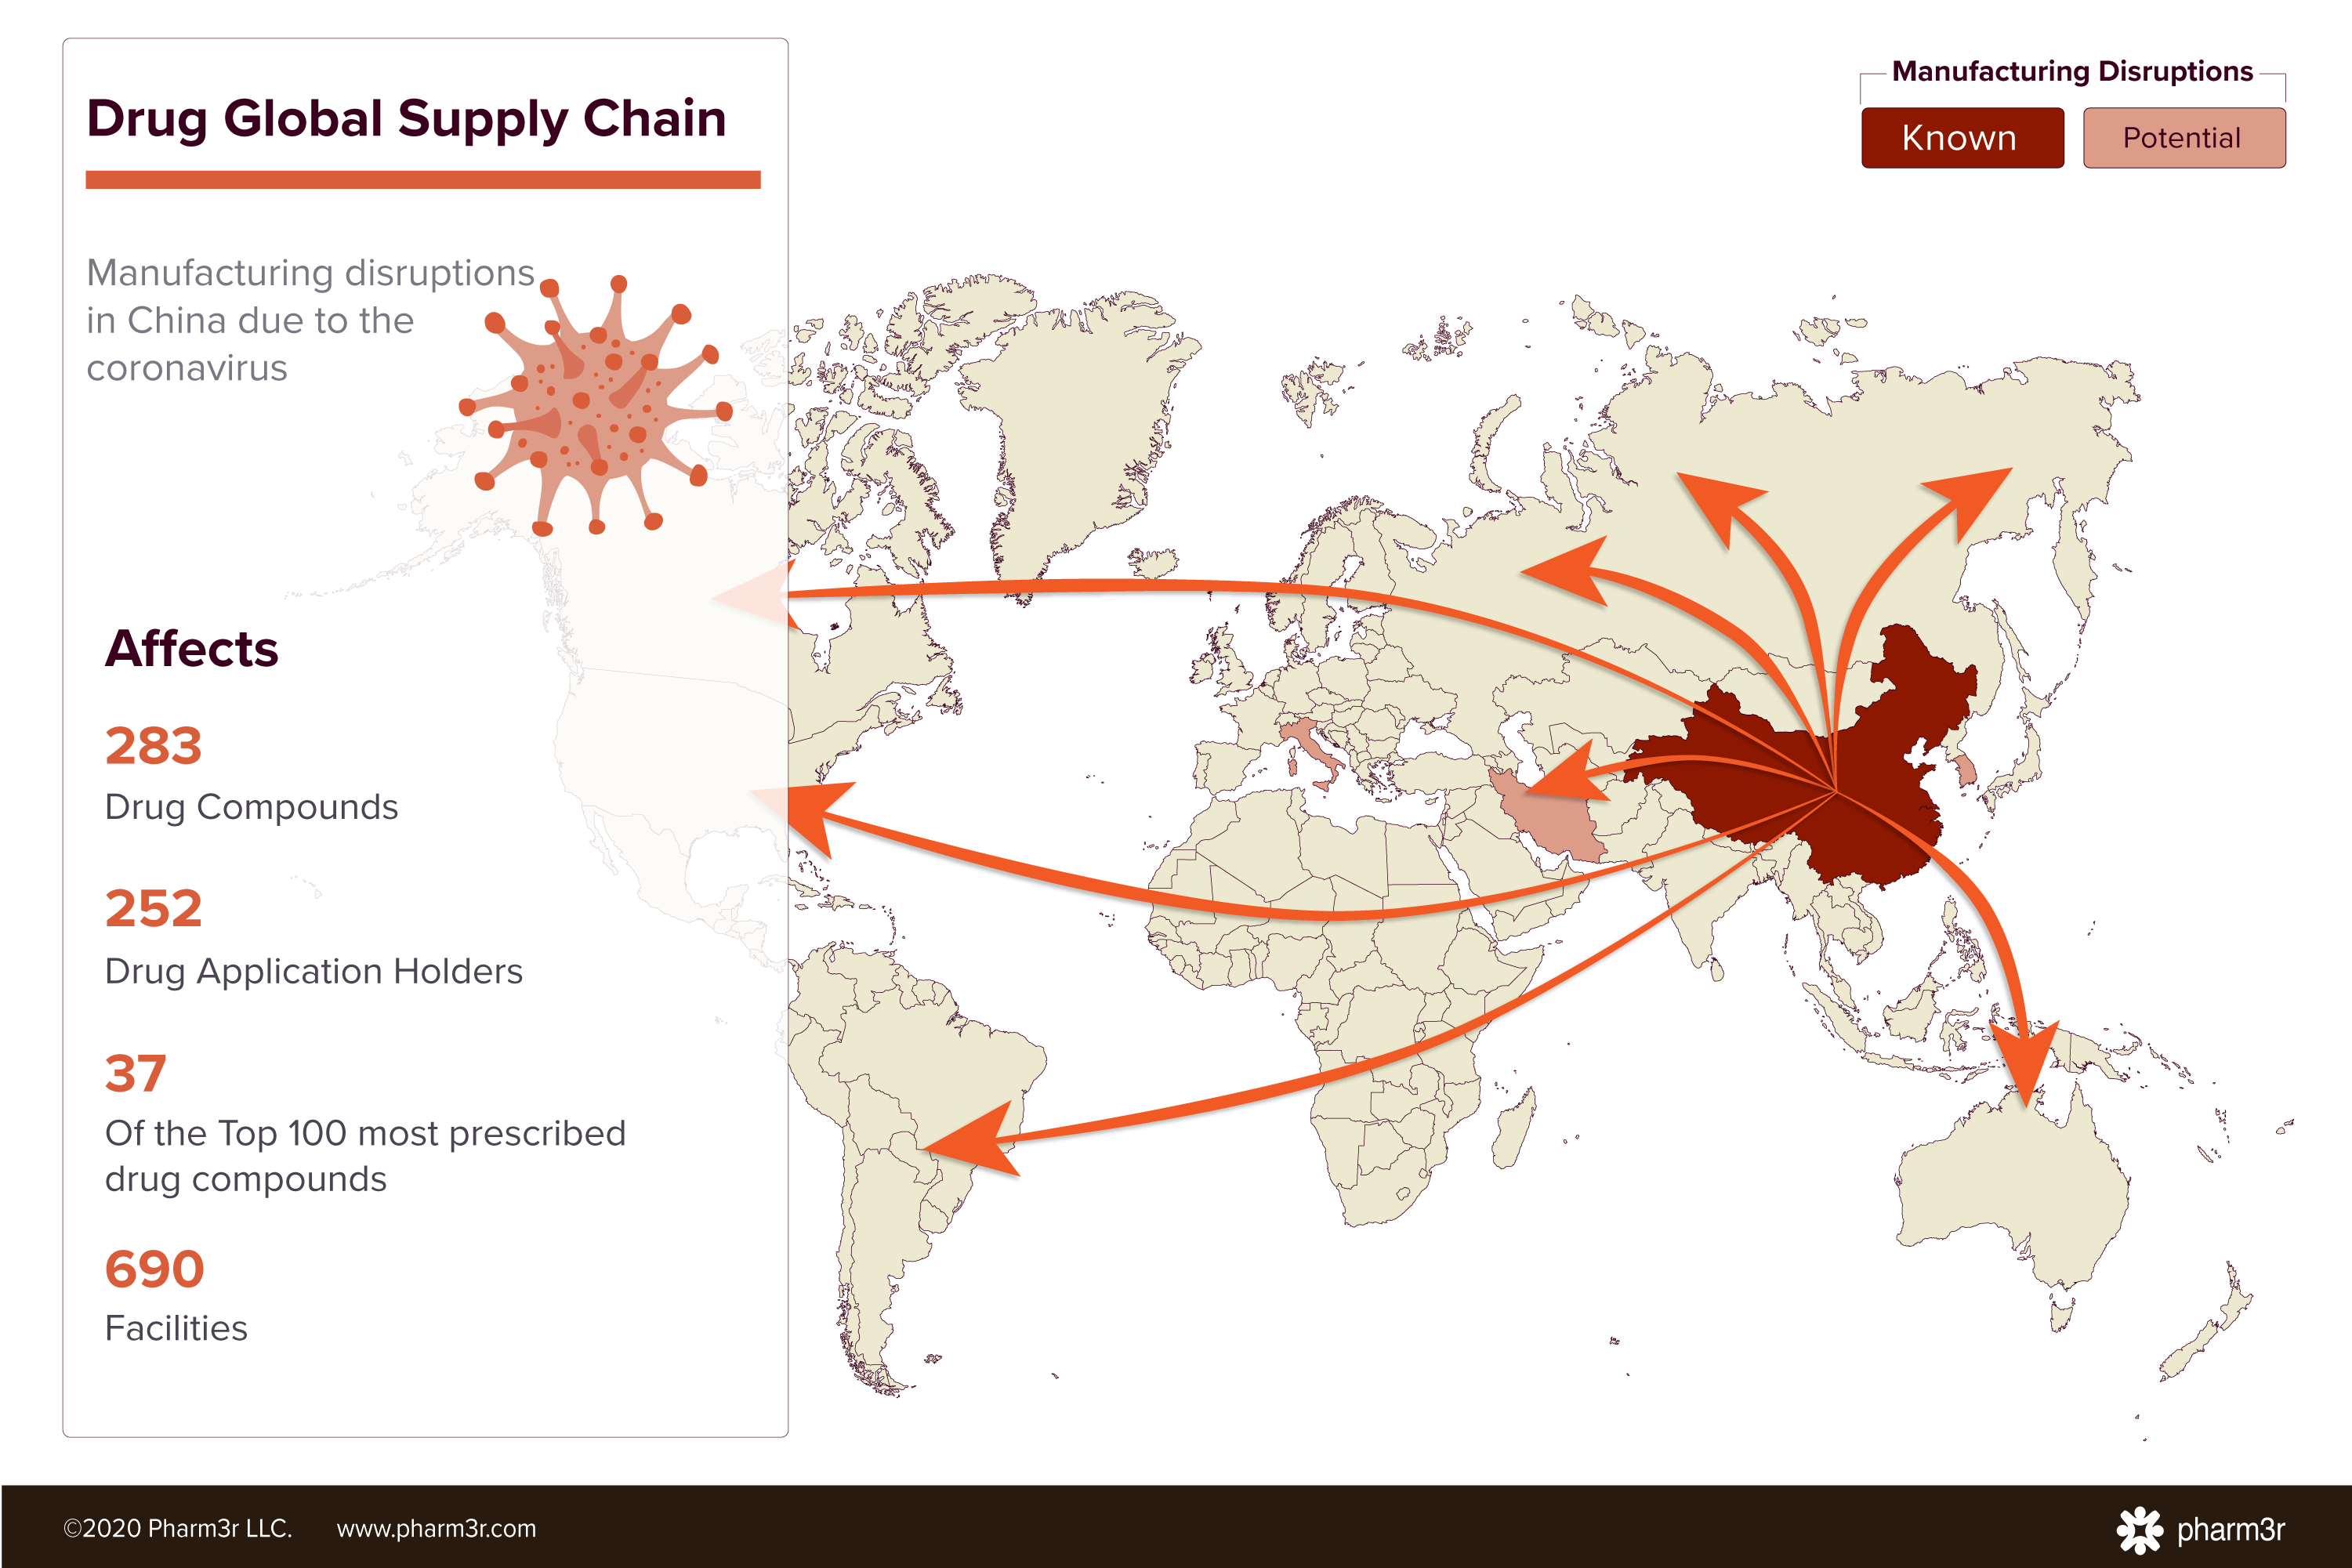 Global Drug Supply Chain Disruptions